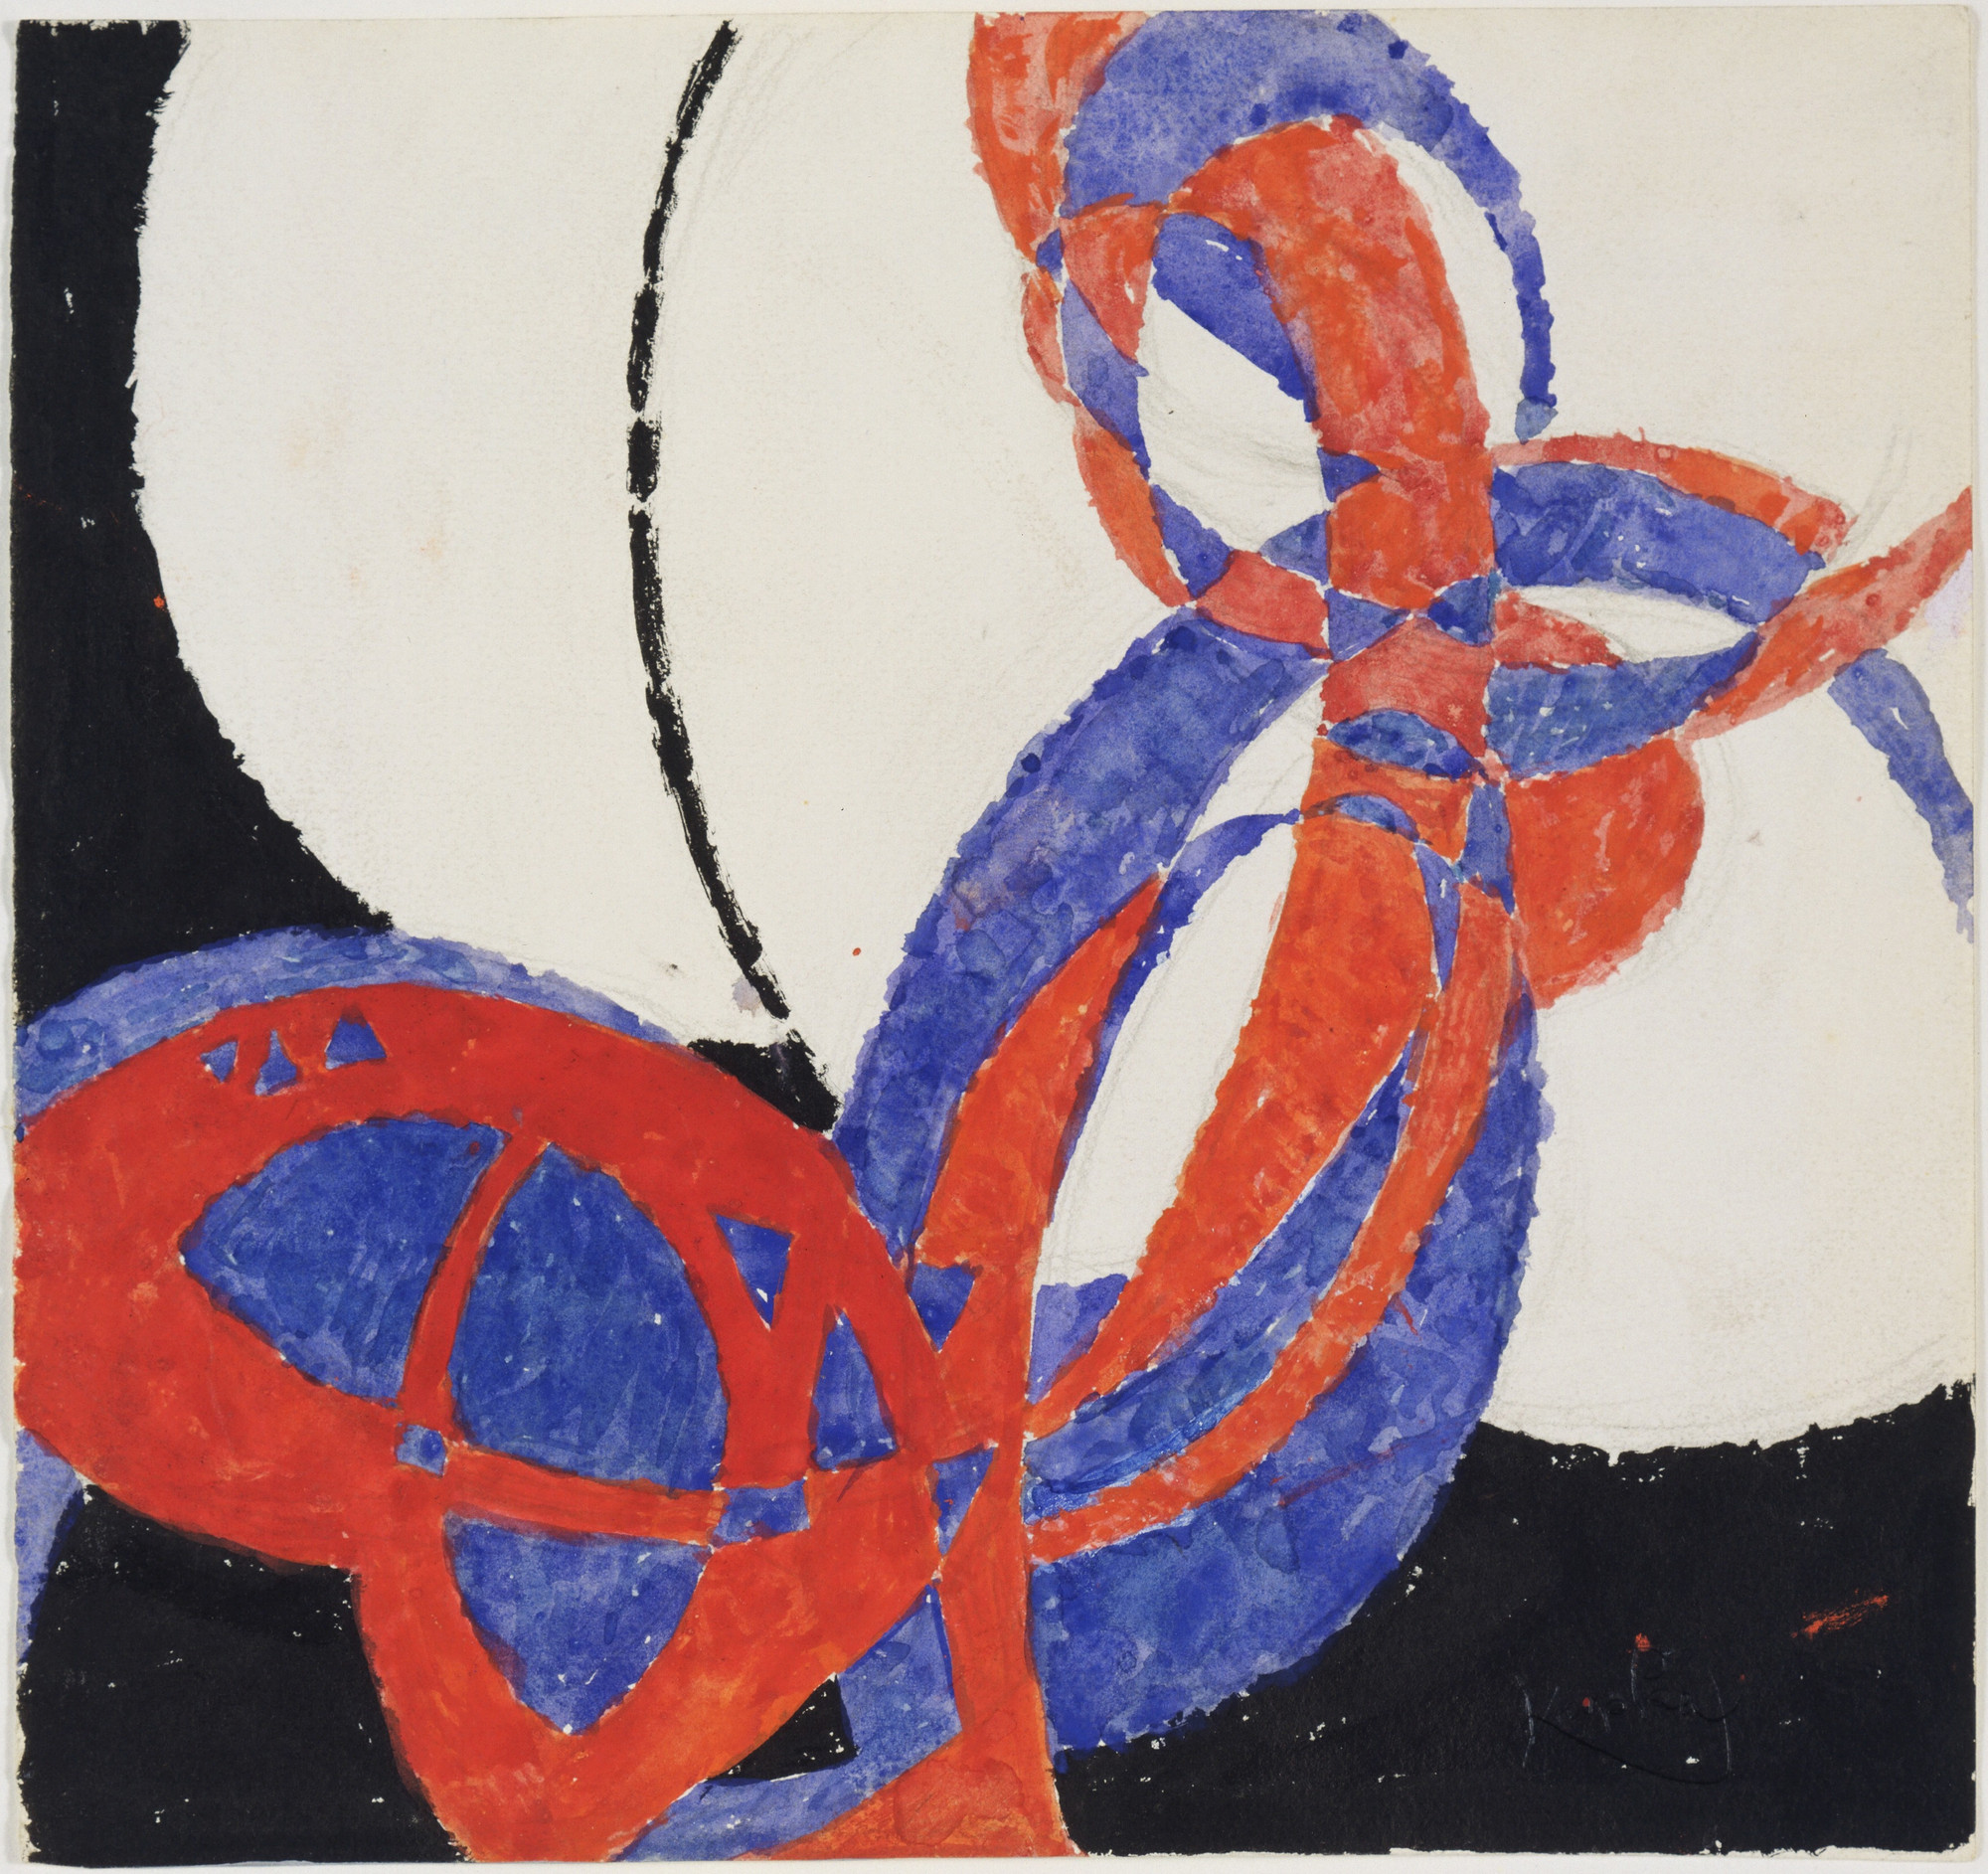 František Kupka. Replica of Fugue in Two Colors: Amorpha, 1912. (1946)